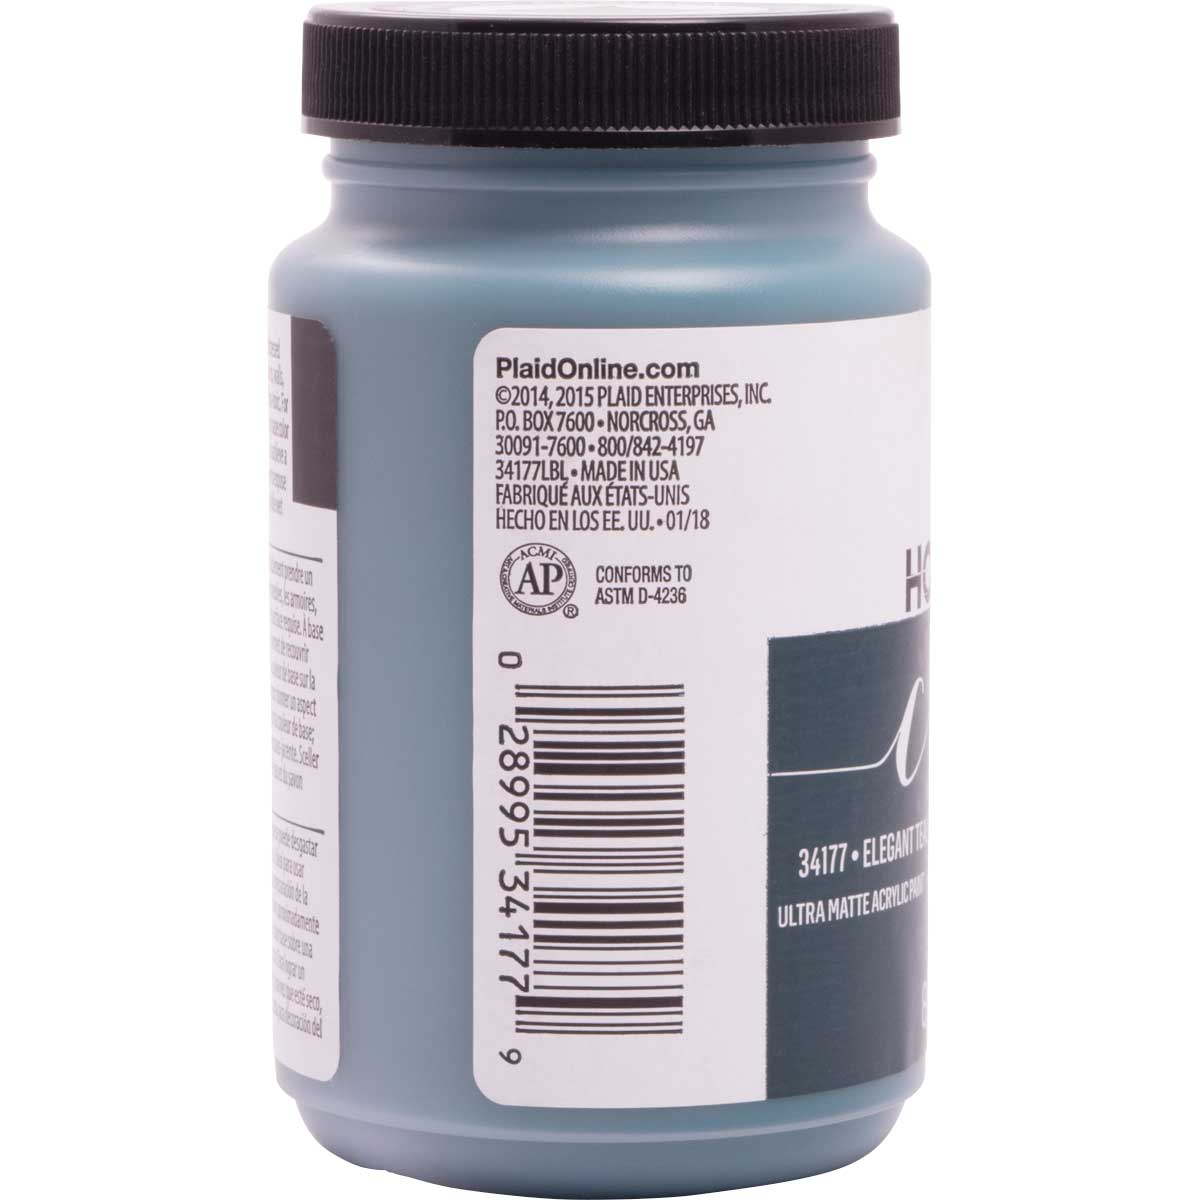 FolkArt ® Home Decor™  Chalk - Elegant Teal, 8 oz. - 34177